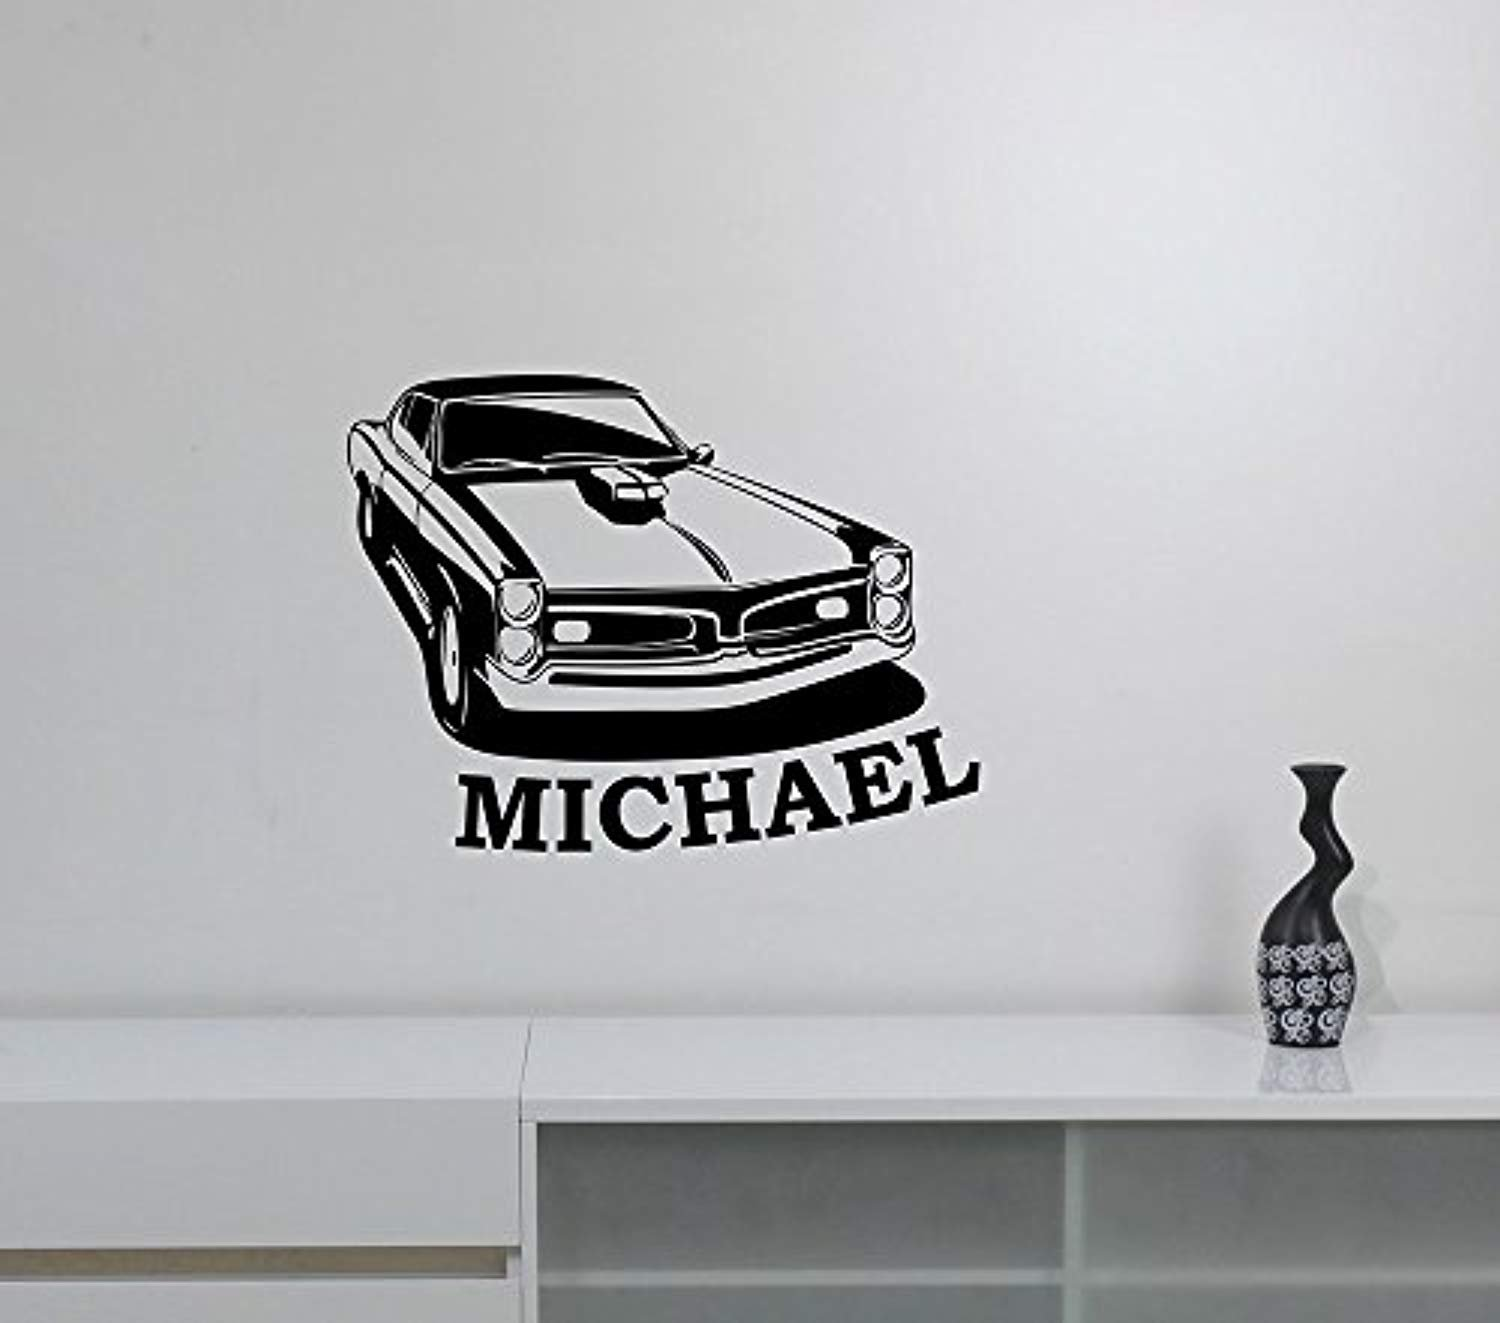 A good decals usa custom name muscle car wall decal retro vintage auto vehicle personalized vinyl sticker roadster hotrod race art decorations for home boys